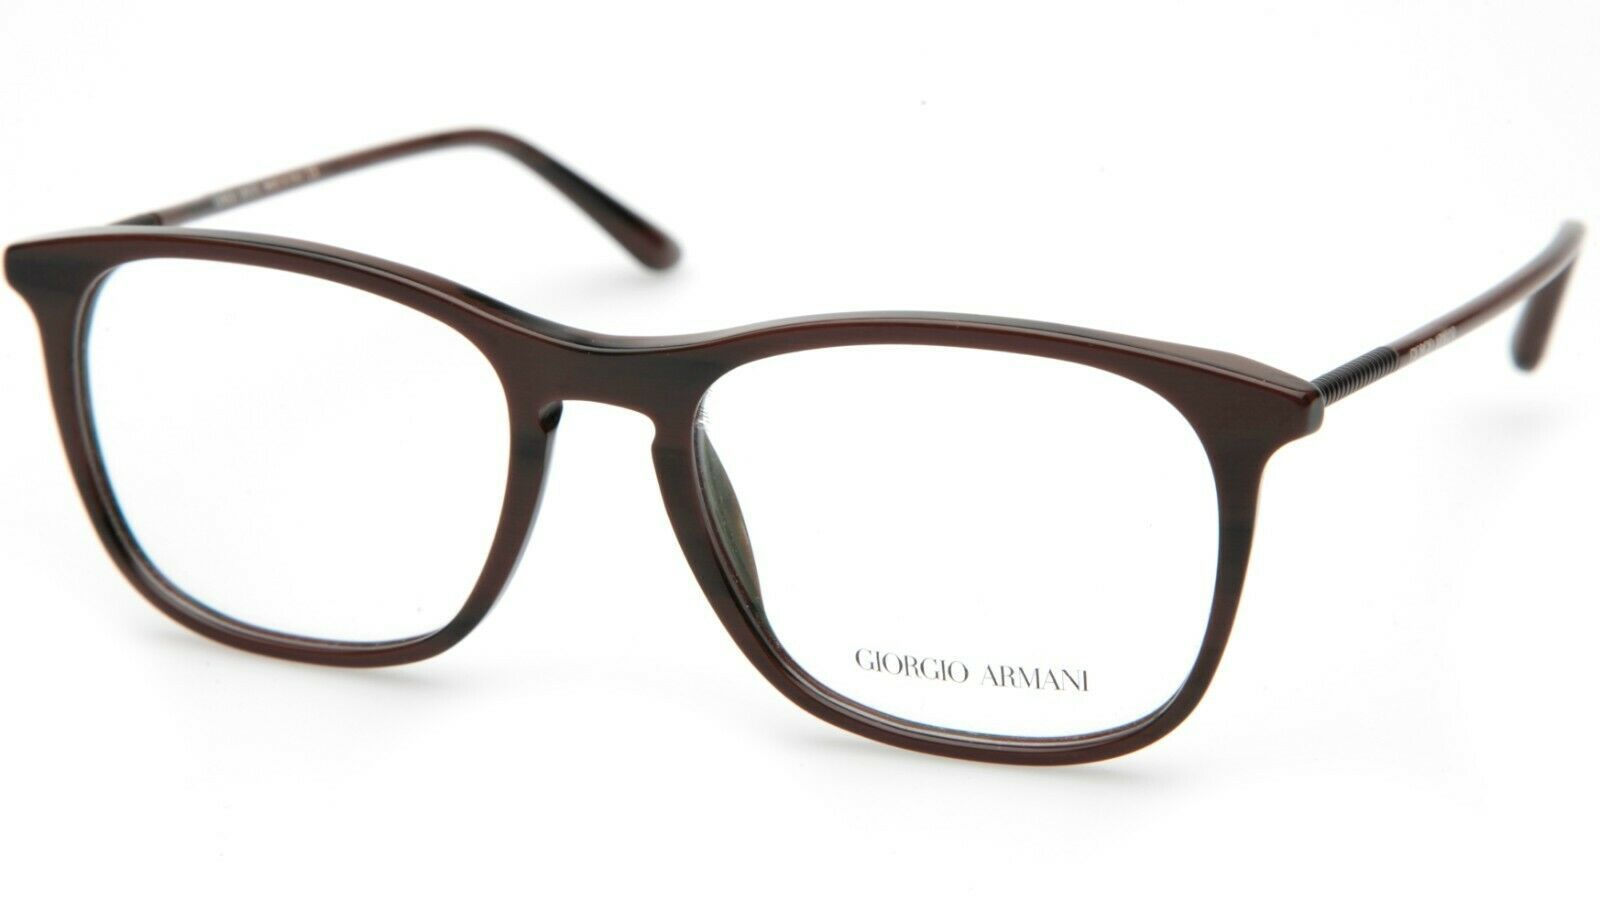 Primary image for New GIORGIO ARMANI AR7103 5498 Brown EYEGLASSES FRAME 53-18-145mm B42mm Italy